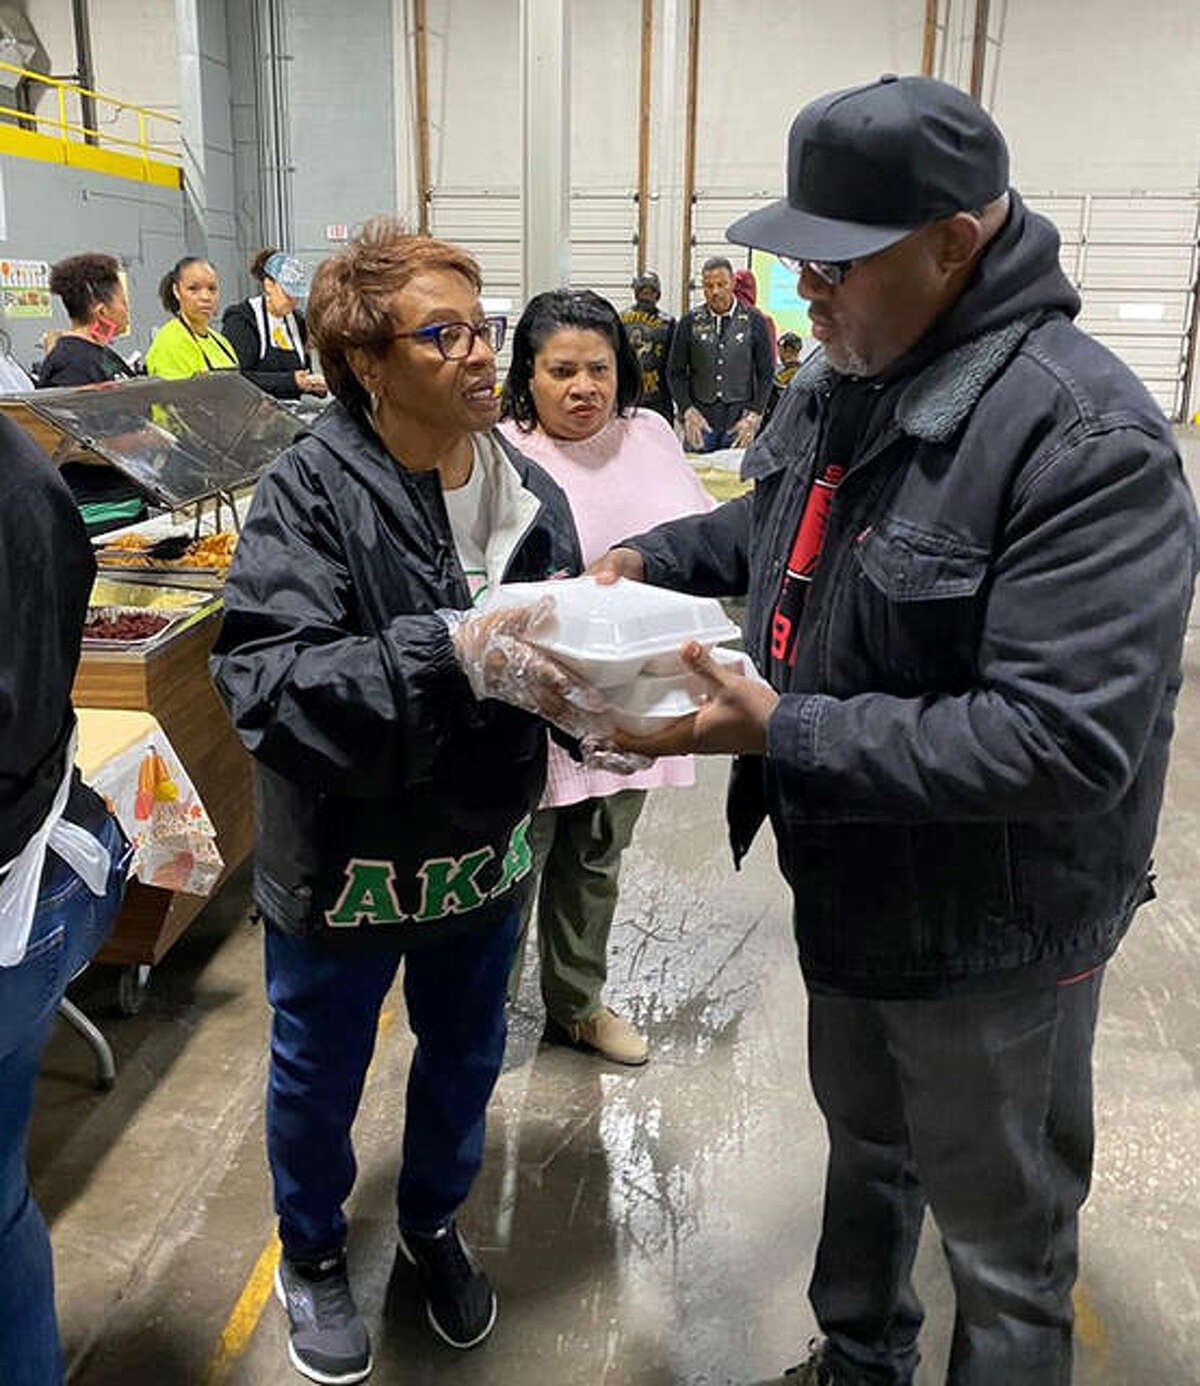 Upsilon Phi Omega members Adele Carpenter handing off a meal for the sick and shut-in at Soup N Share/Thanksgiving Day. Granite City on Nov. 28, 2019.